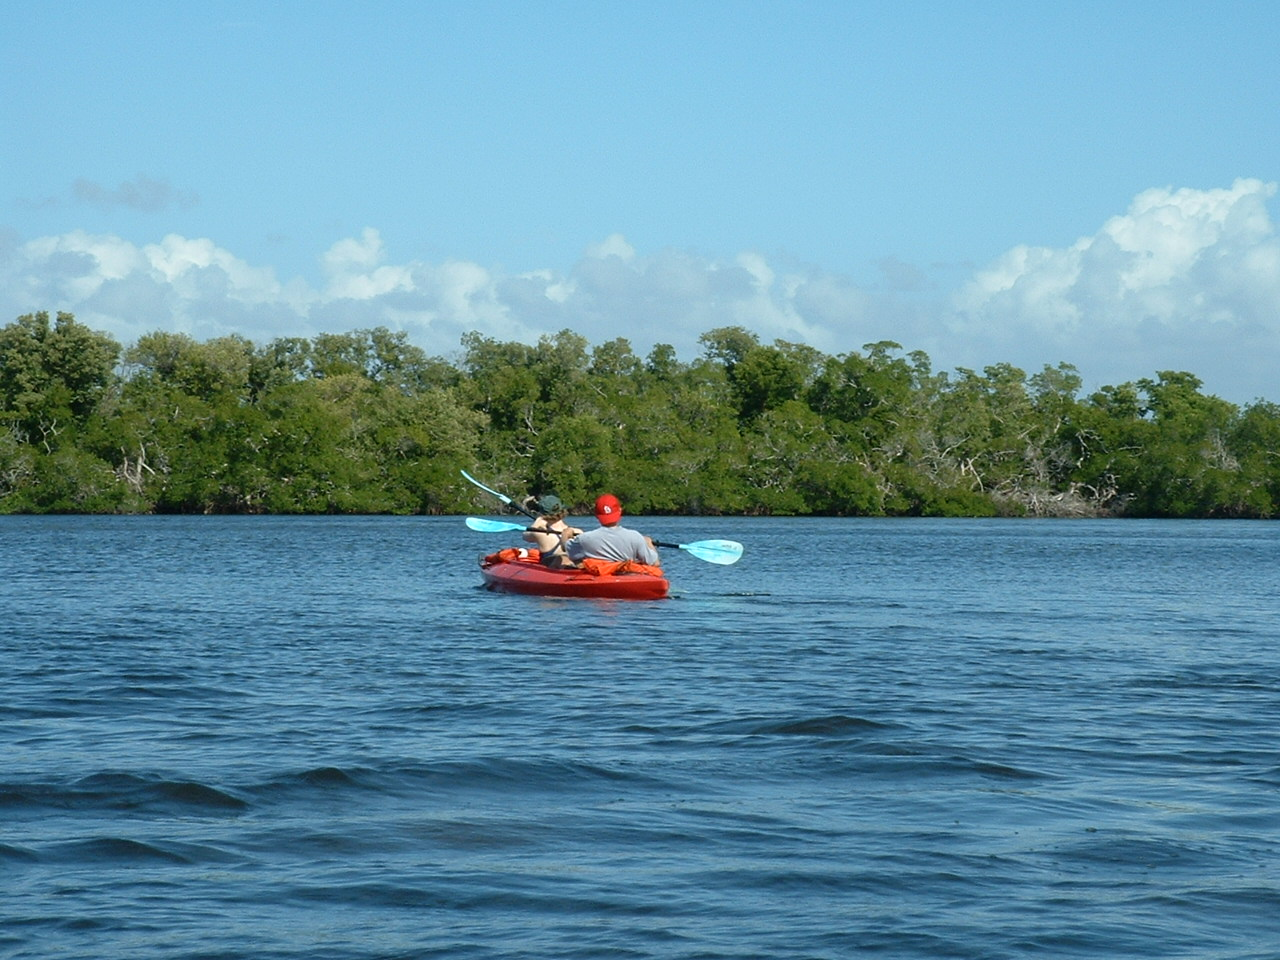 Kayaking Bonita Springs - Island Coast Transportation